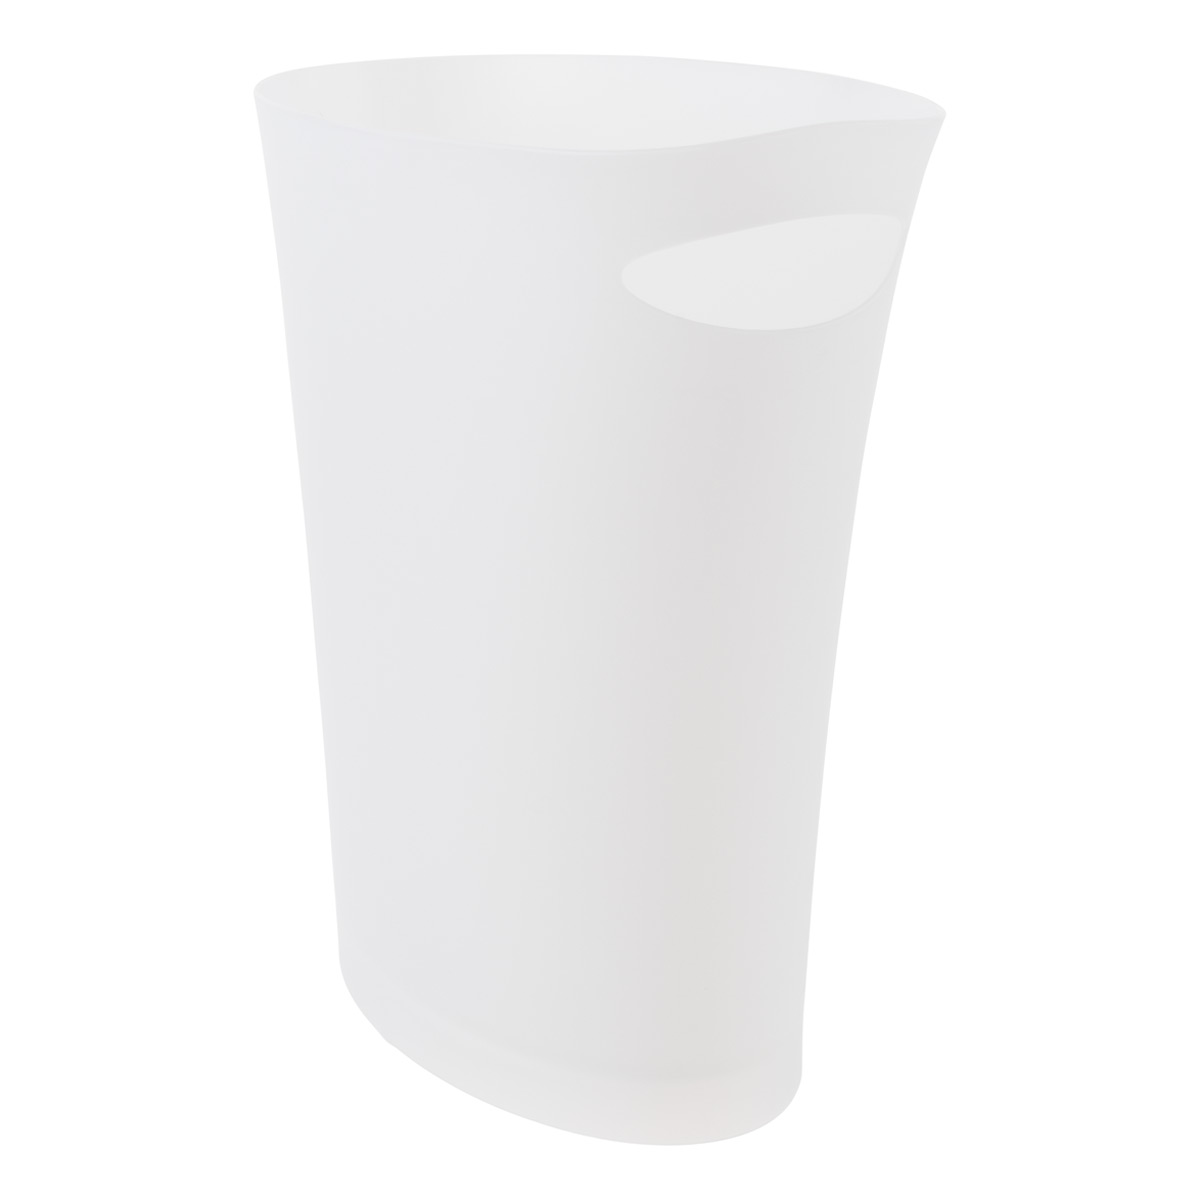 Umbra White Skinny Trash Can